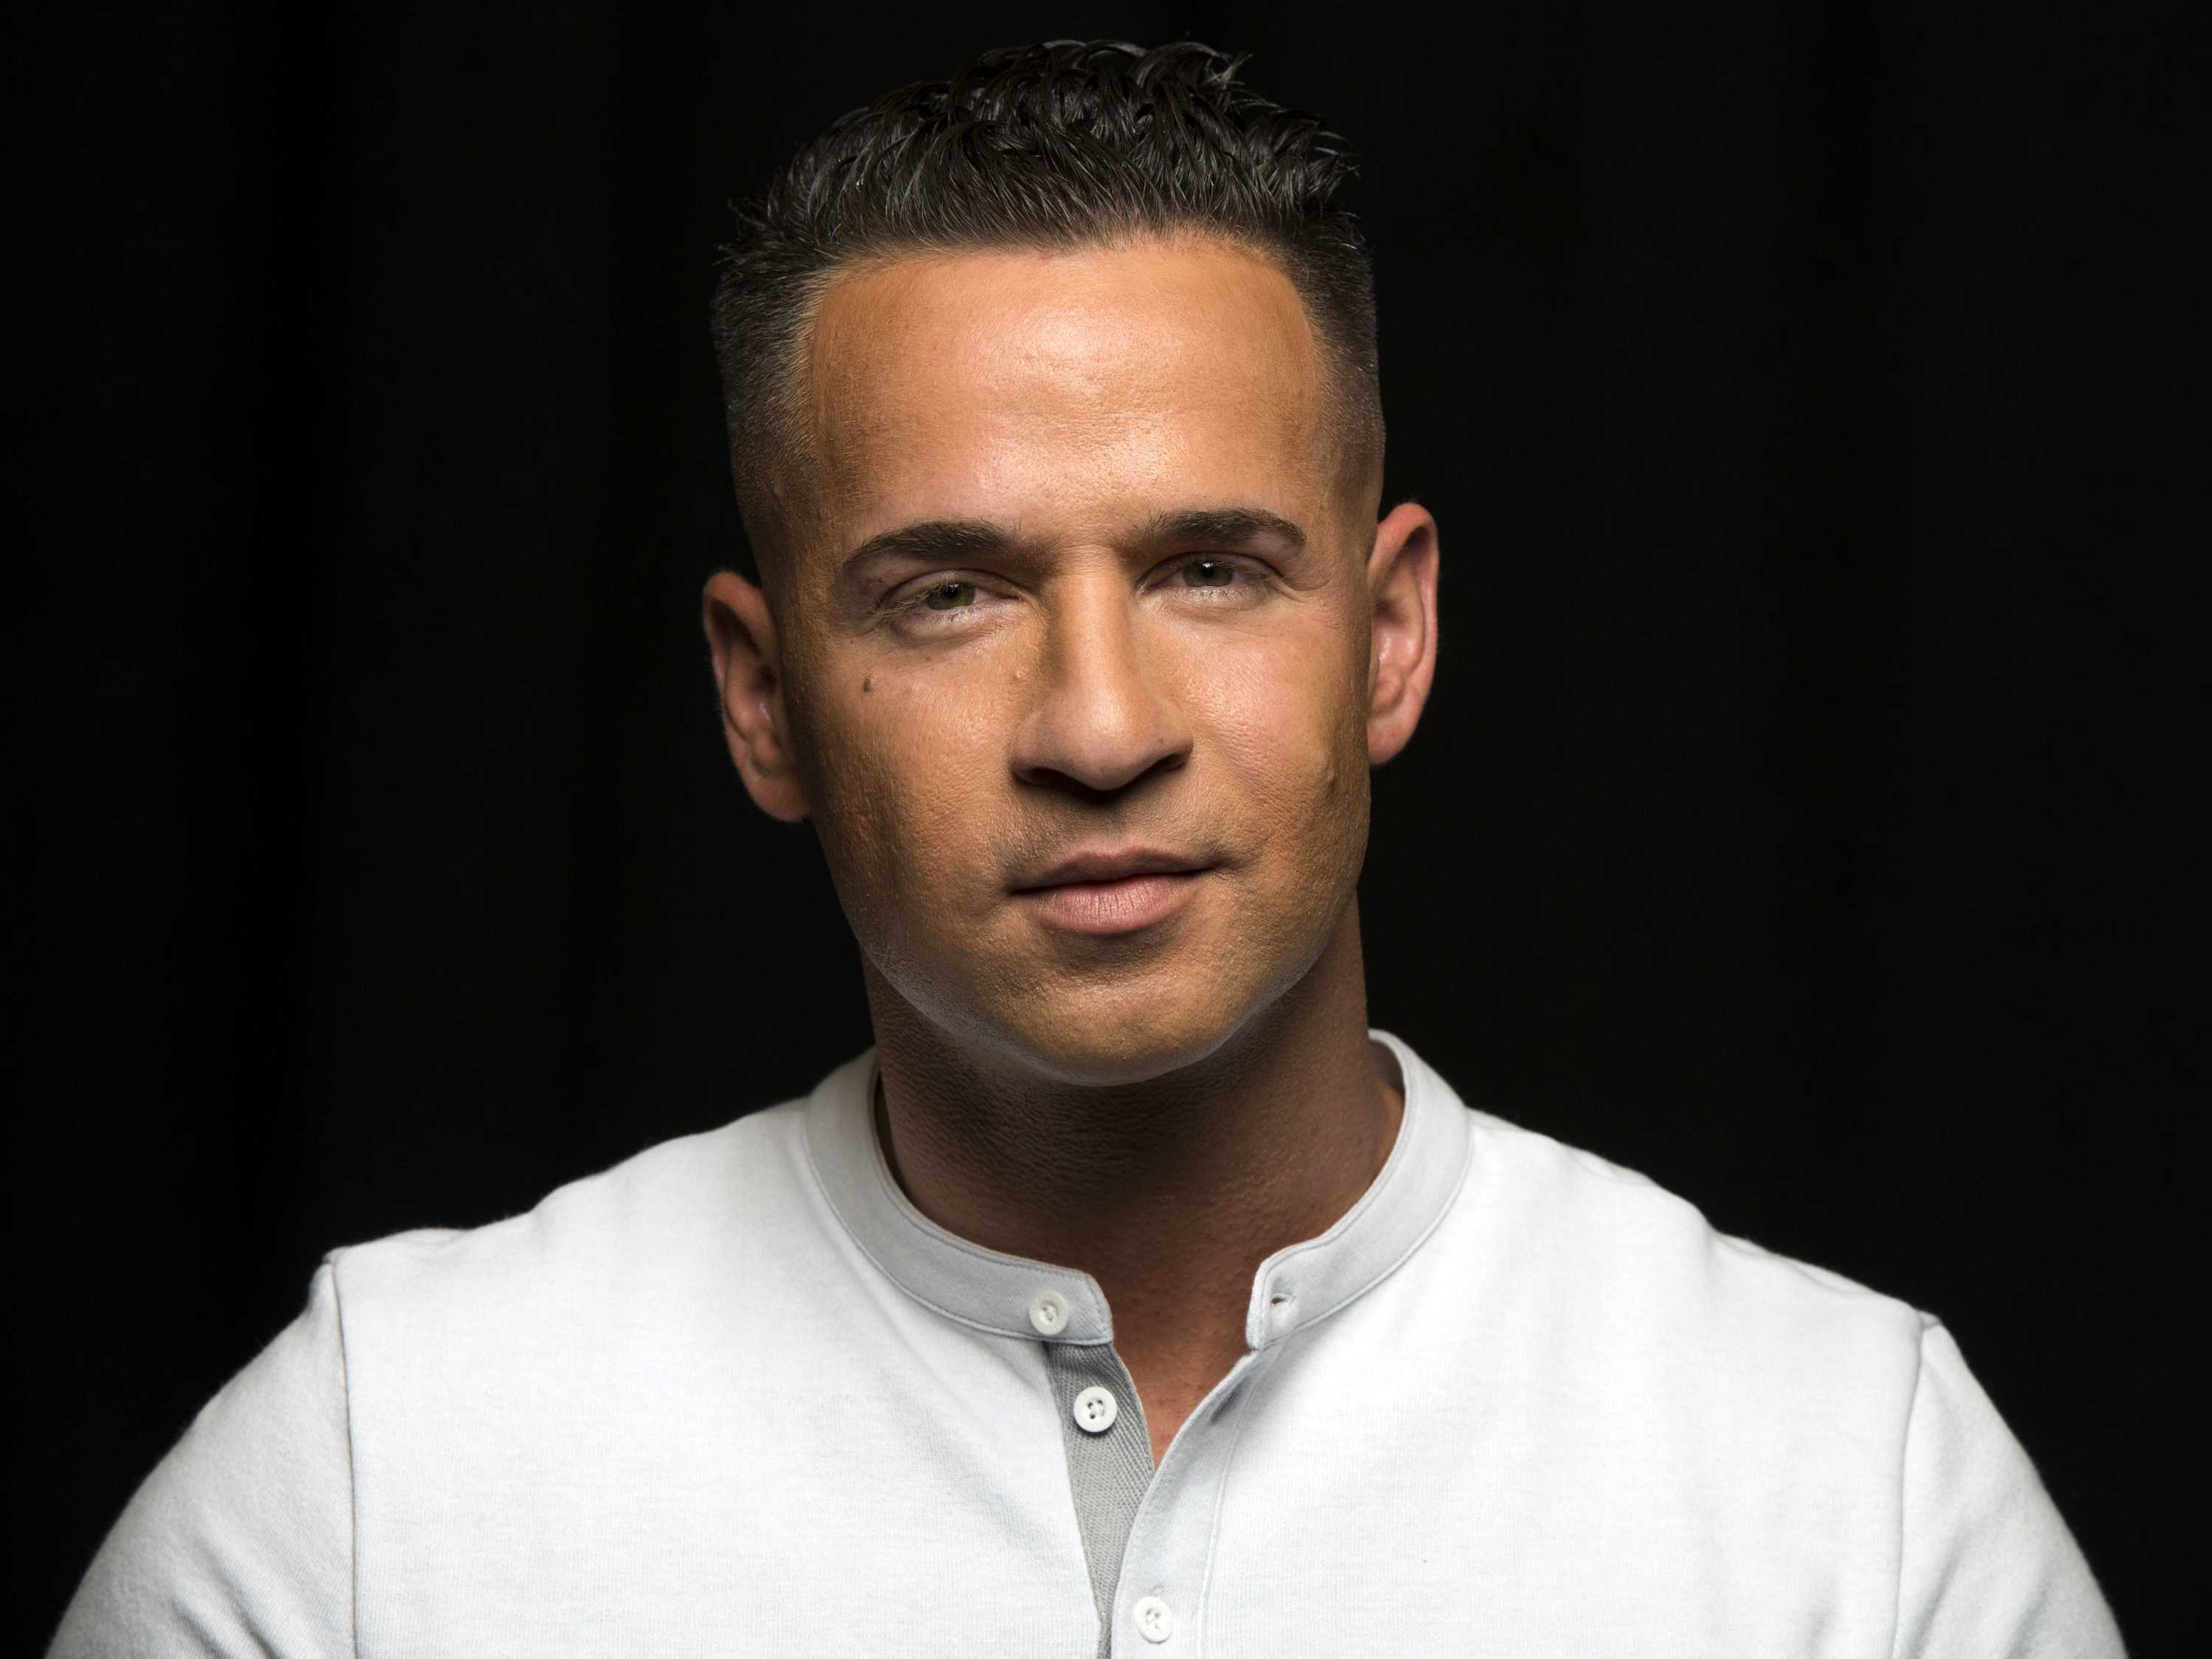 'Jersey Shore' Star Expected to Plead to Tax Charges